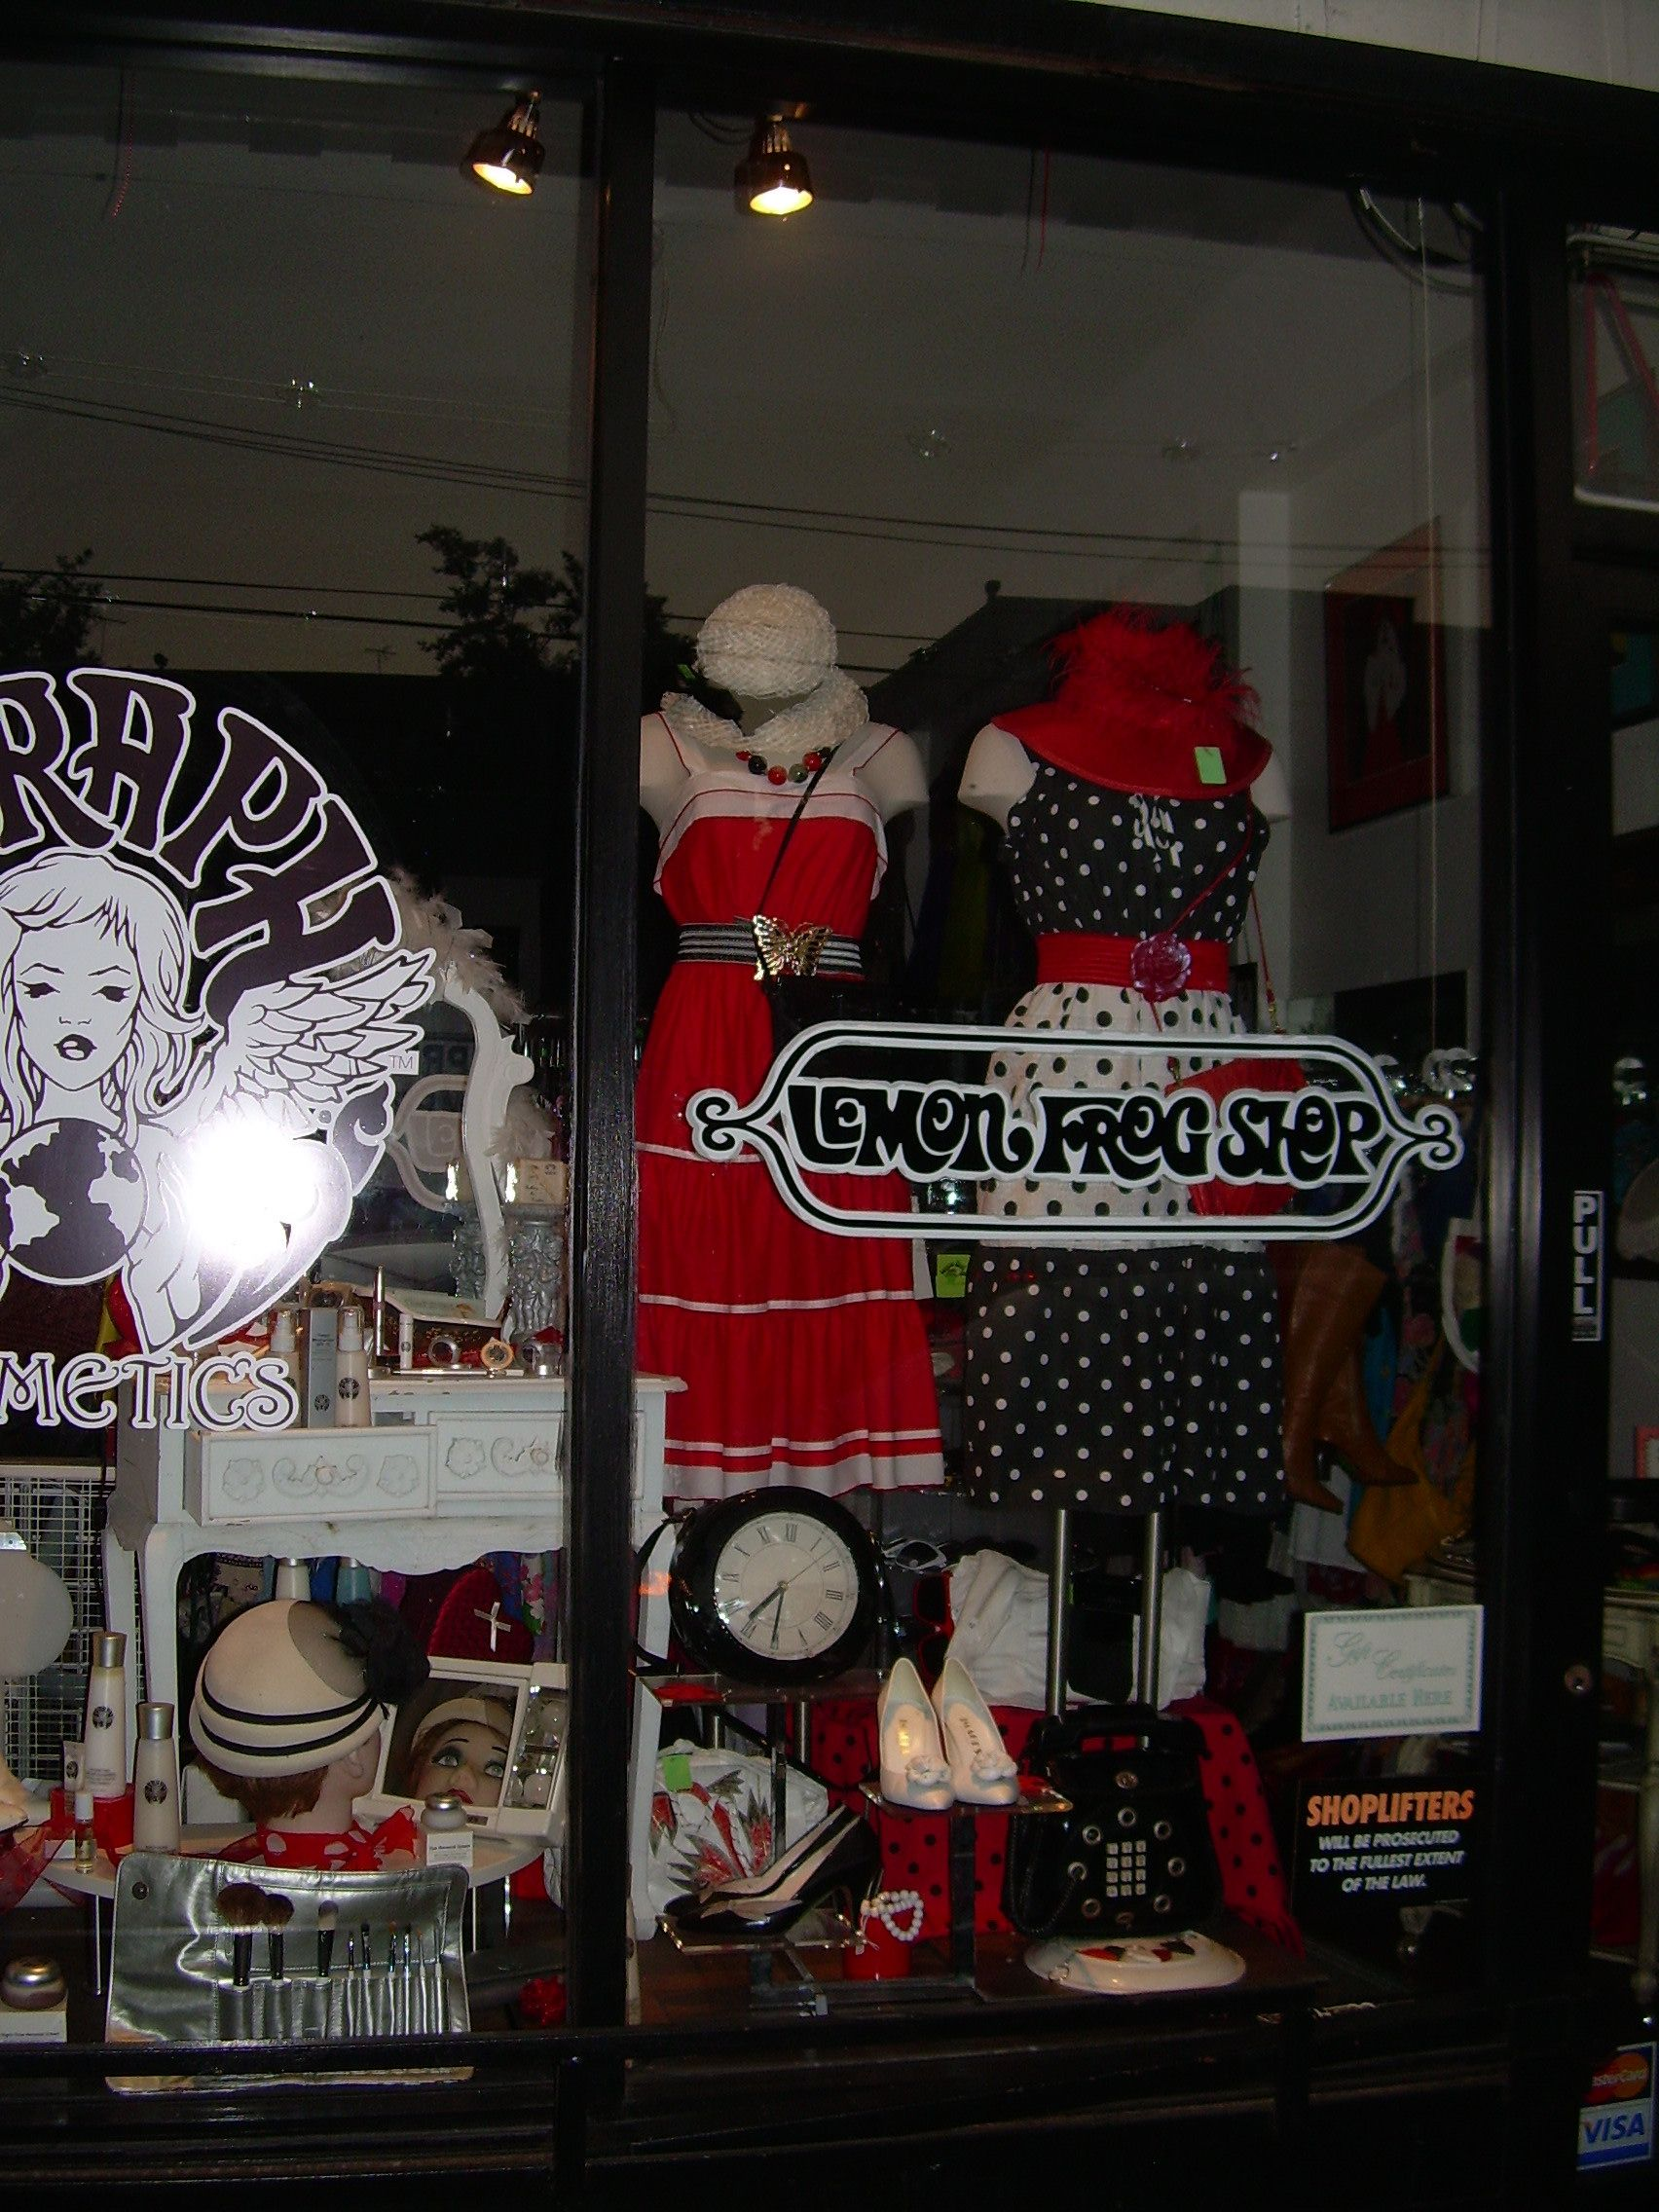 Red White And Black Window Display Vintage Shops Christmas Sweaters Black Windows